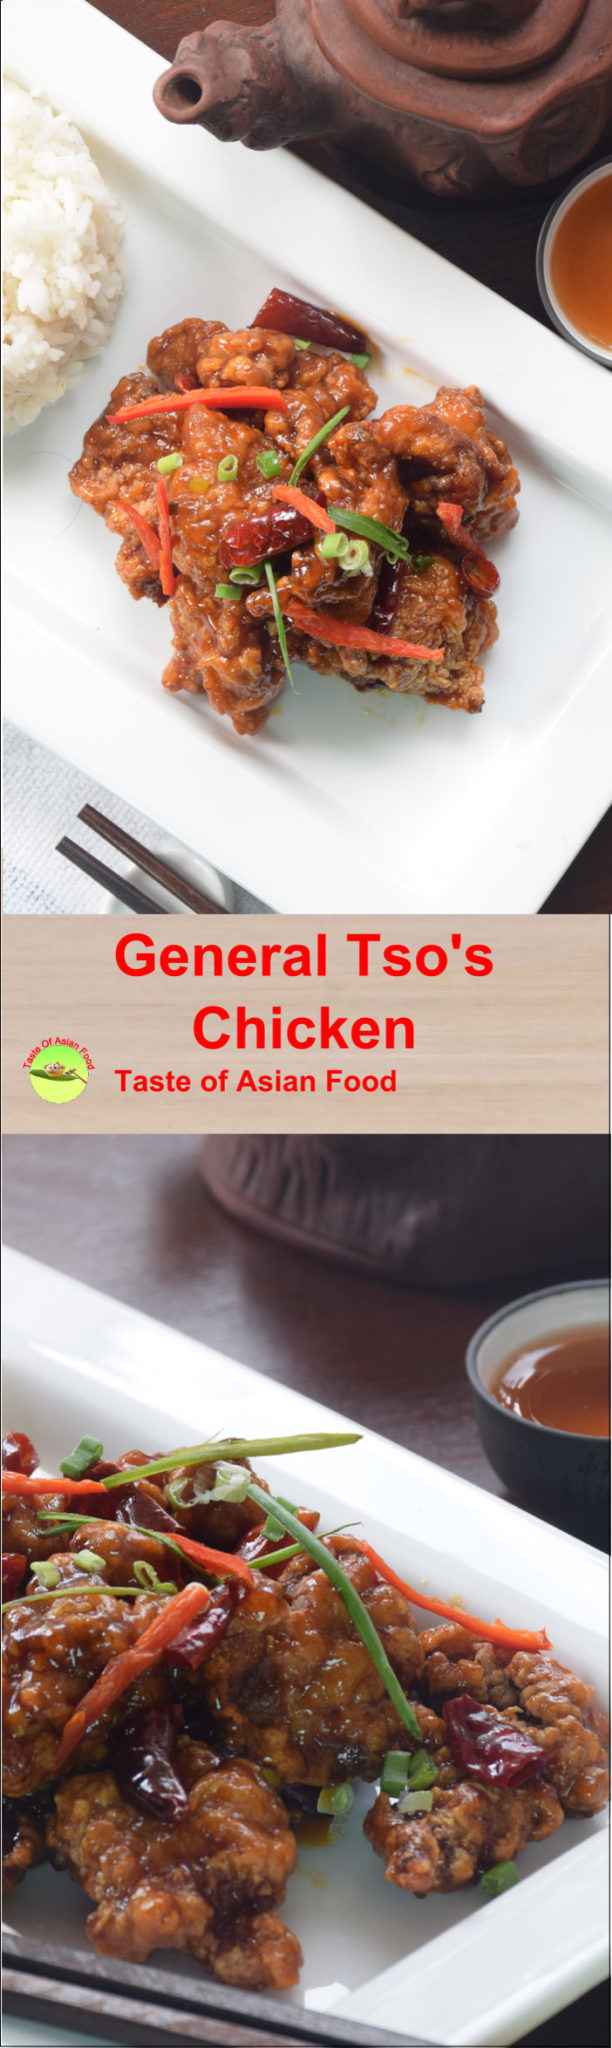 General's Tso chicken pin